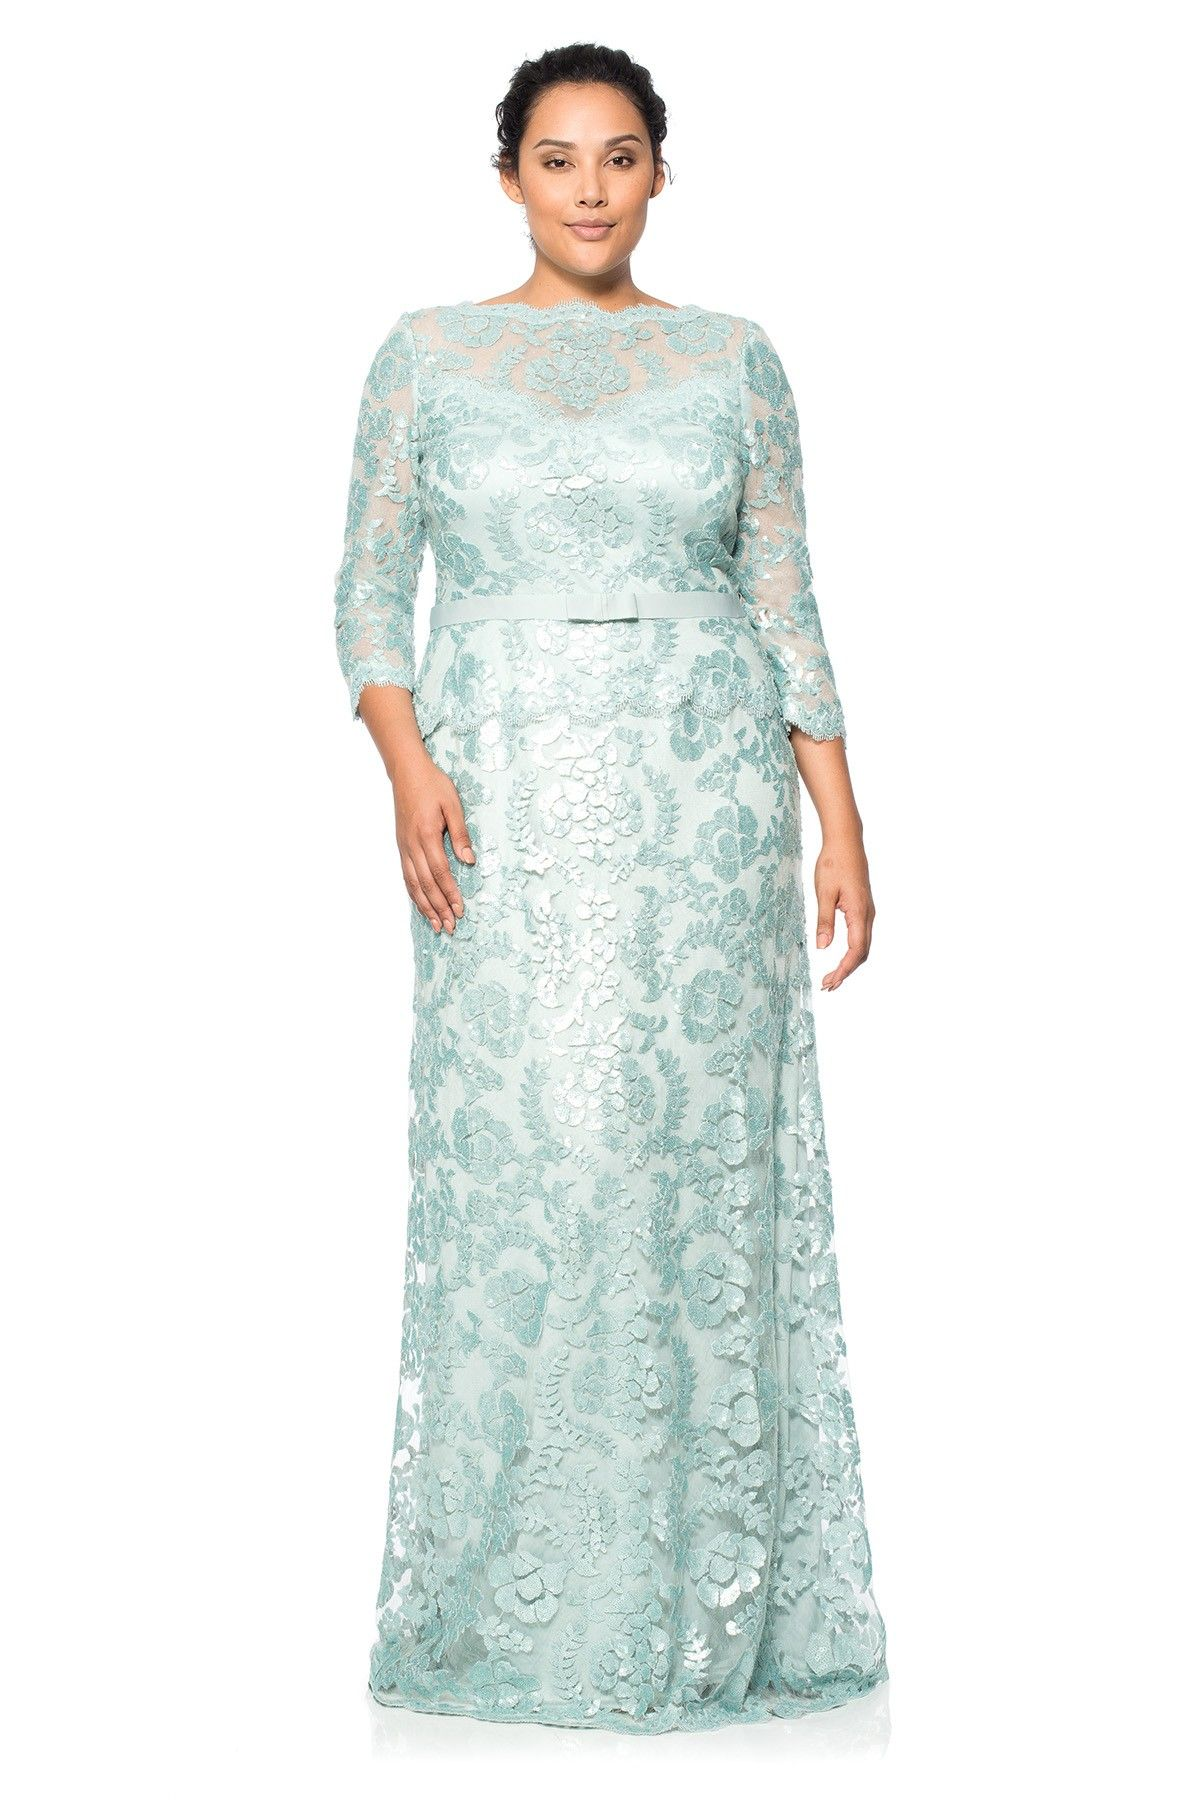 Contemporary Plus Size Modest Wedding Gowns Component - All Wedding ...